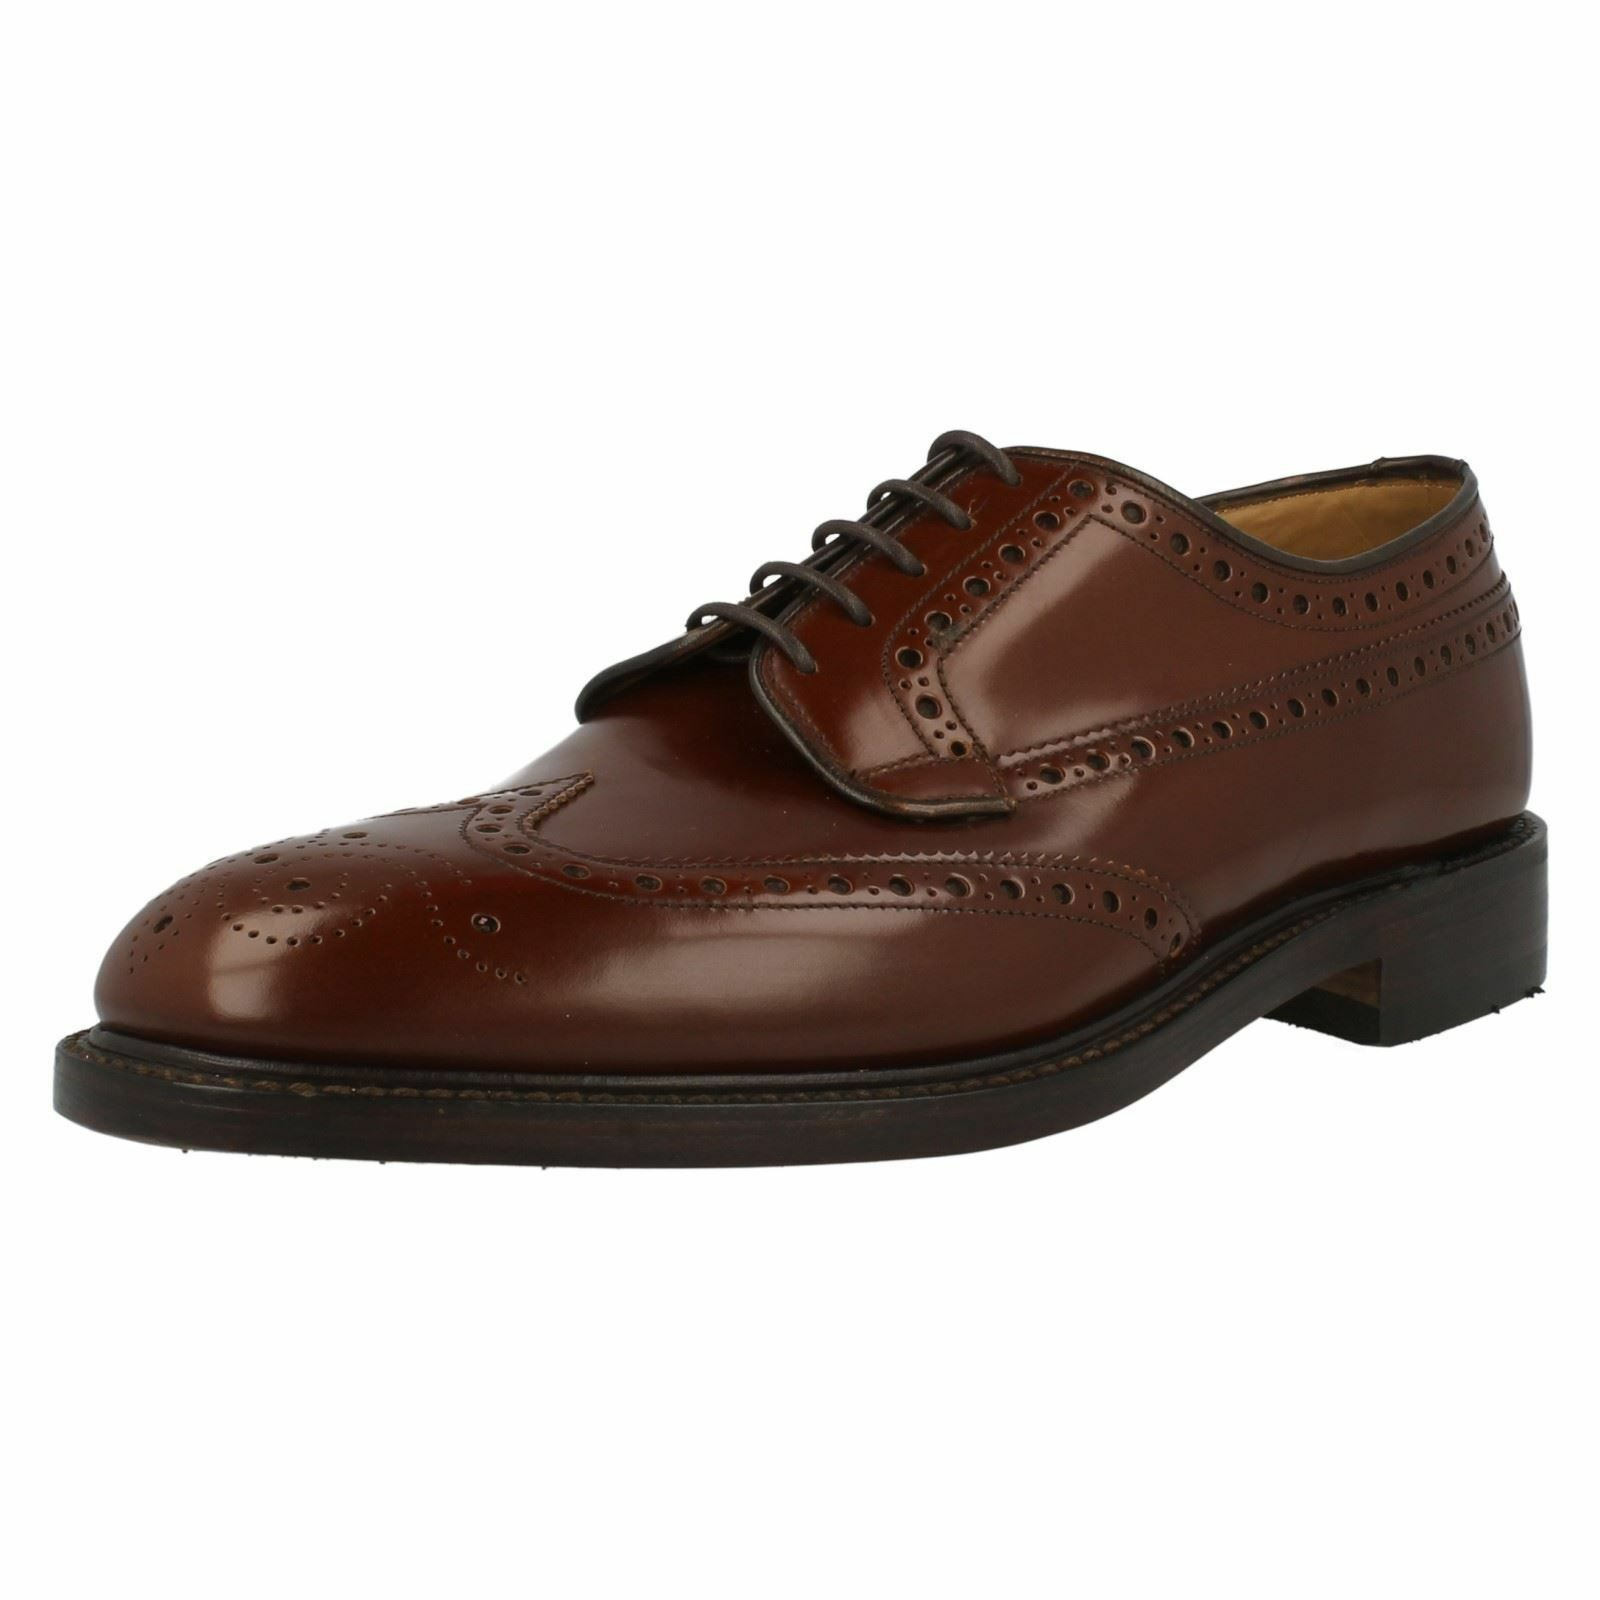 Loake Braemar Tan Leather Traditional Brogue Shoes